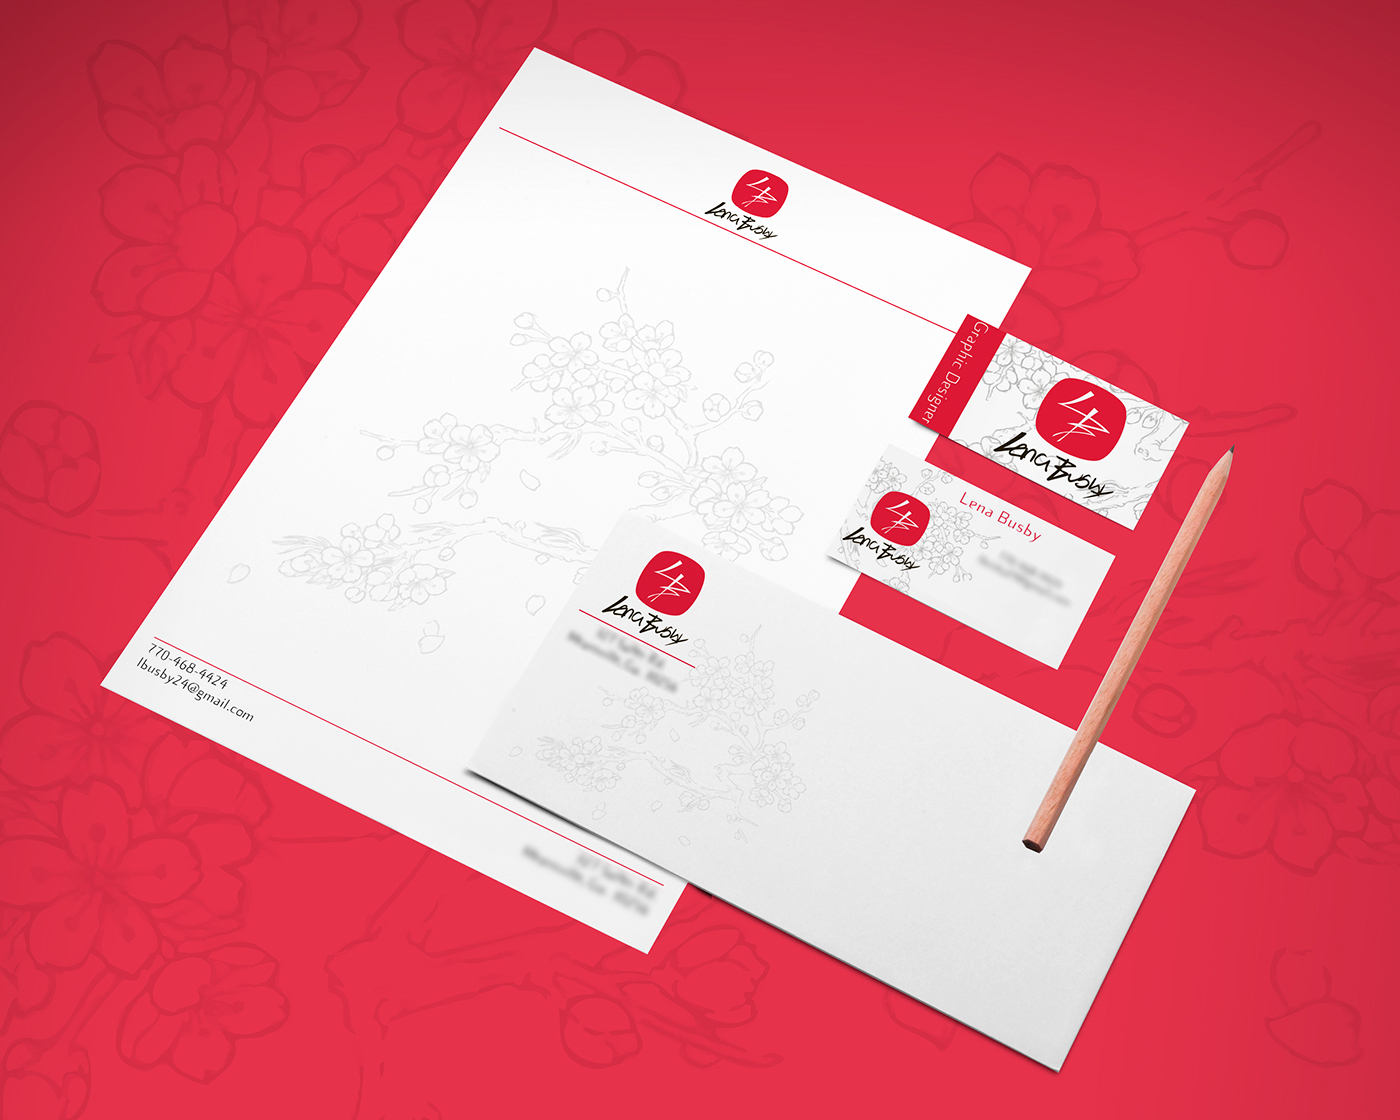 personal stationery and logo design lena busby on behance